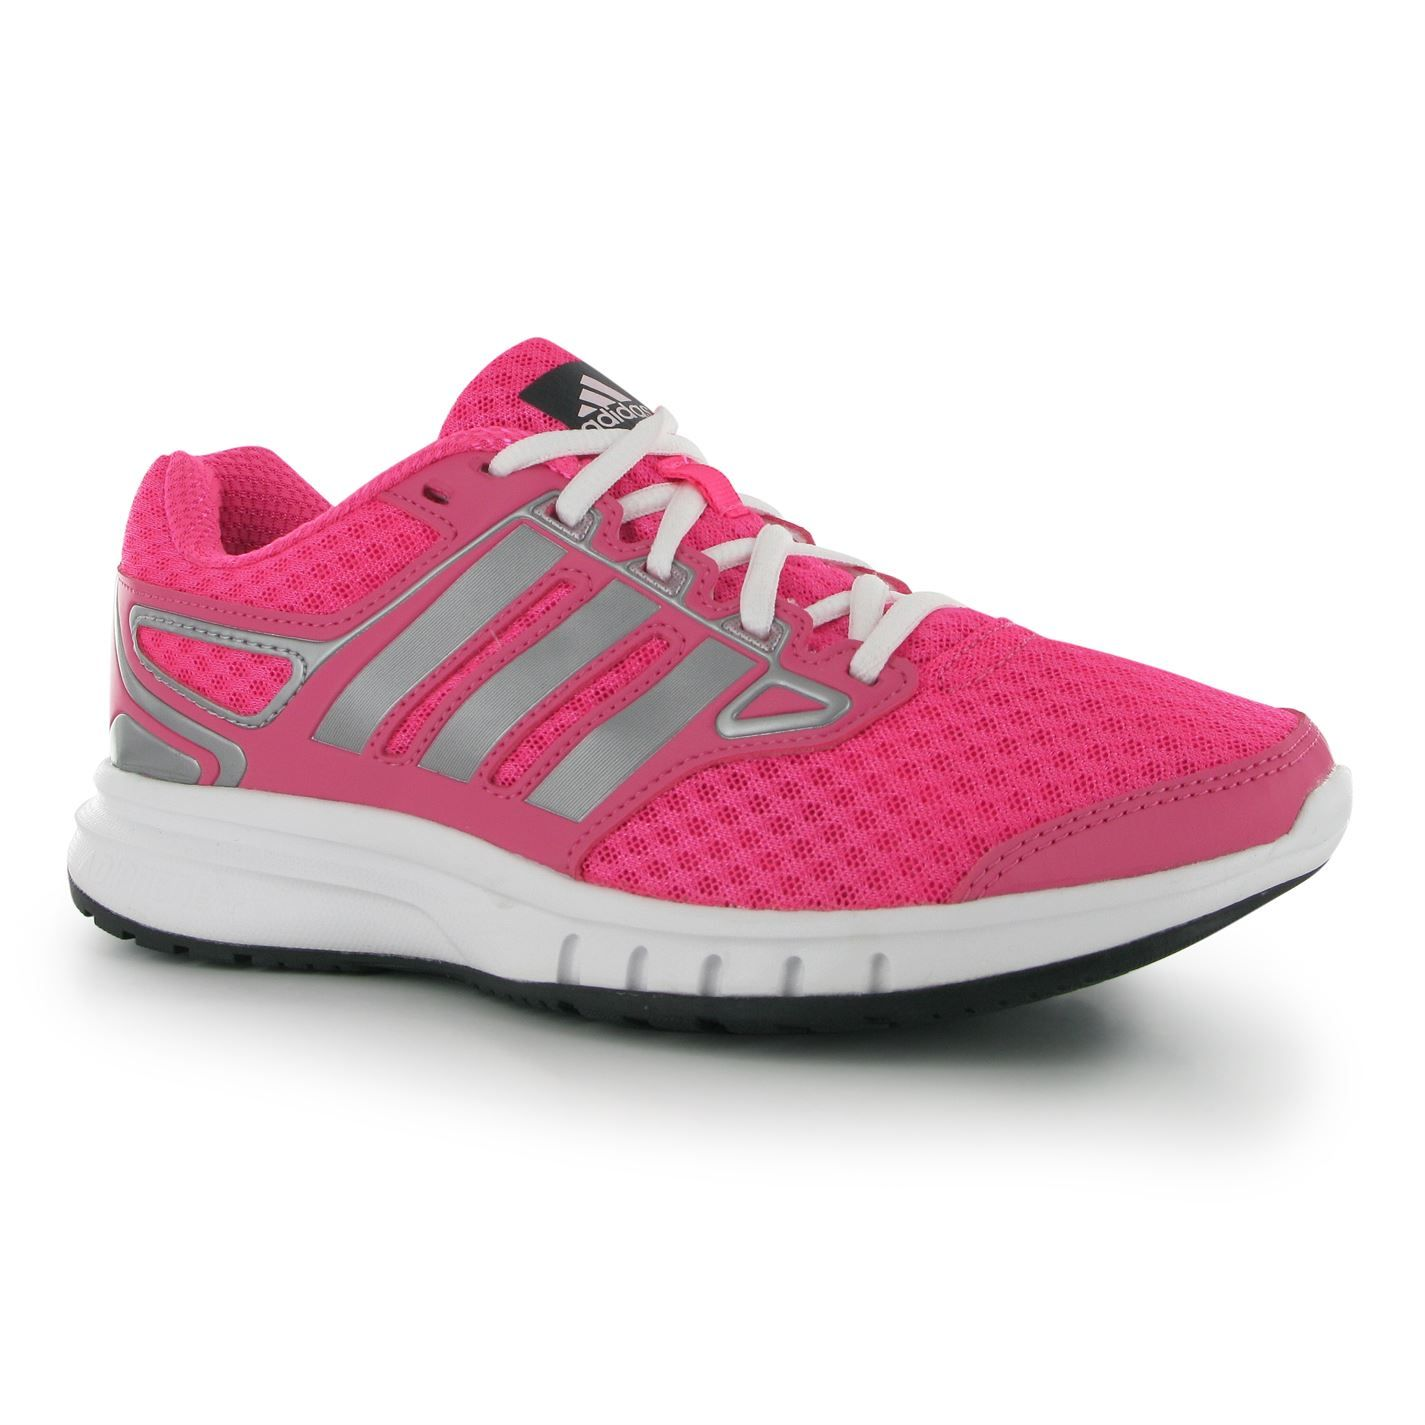 adidas  adidas Galactic Elite Ladies Running Shoes now 2799  sportsdirect running